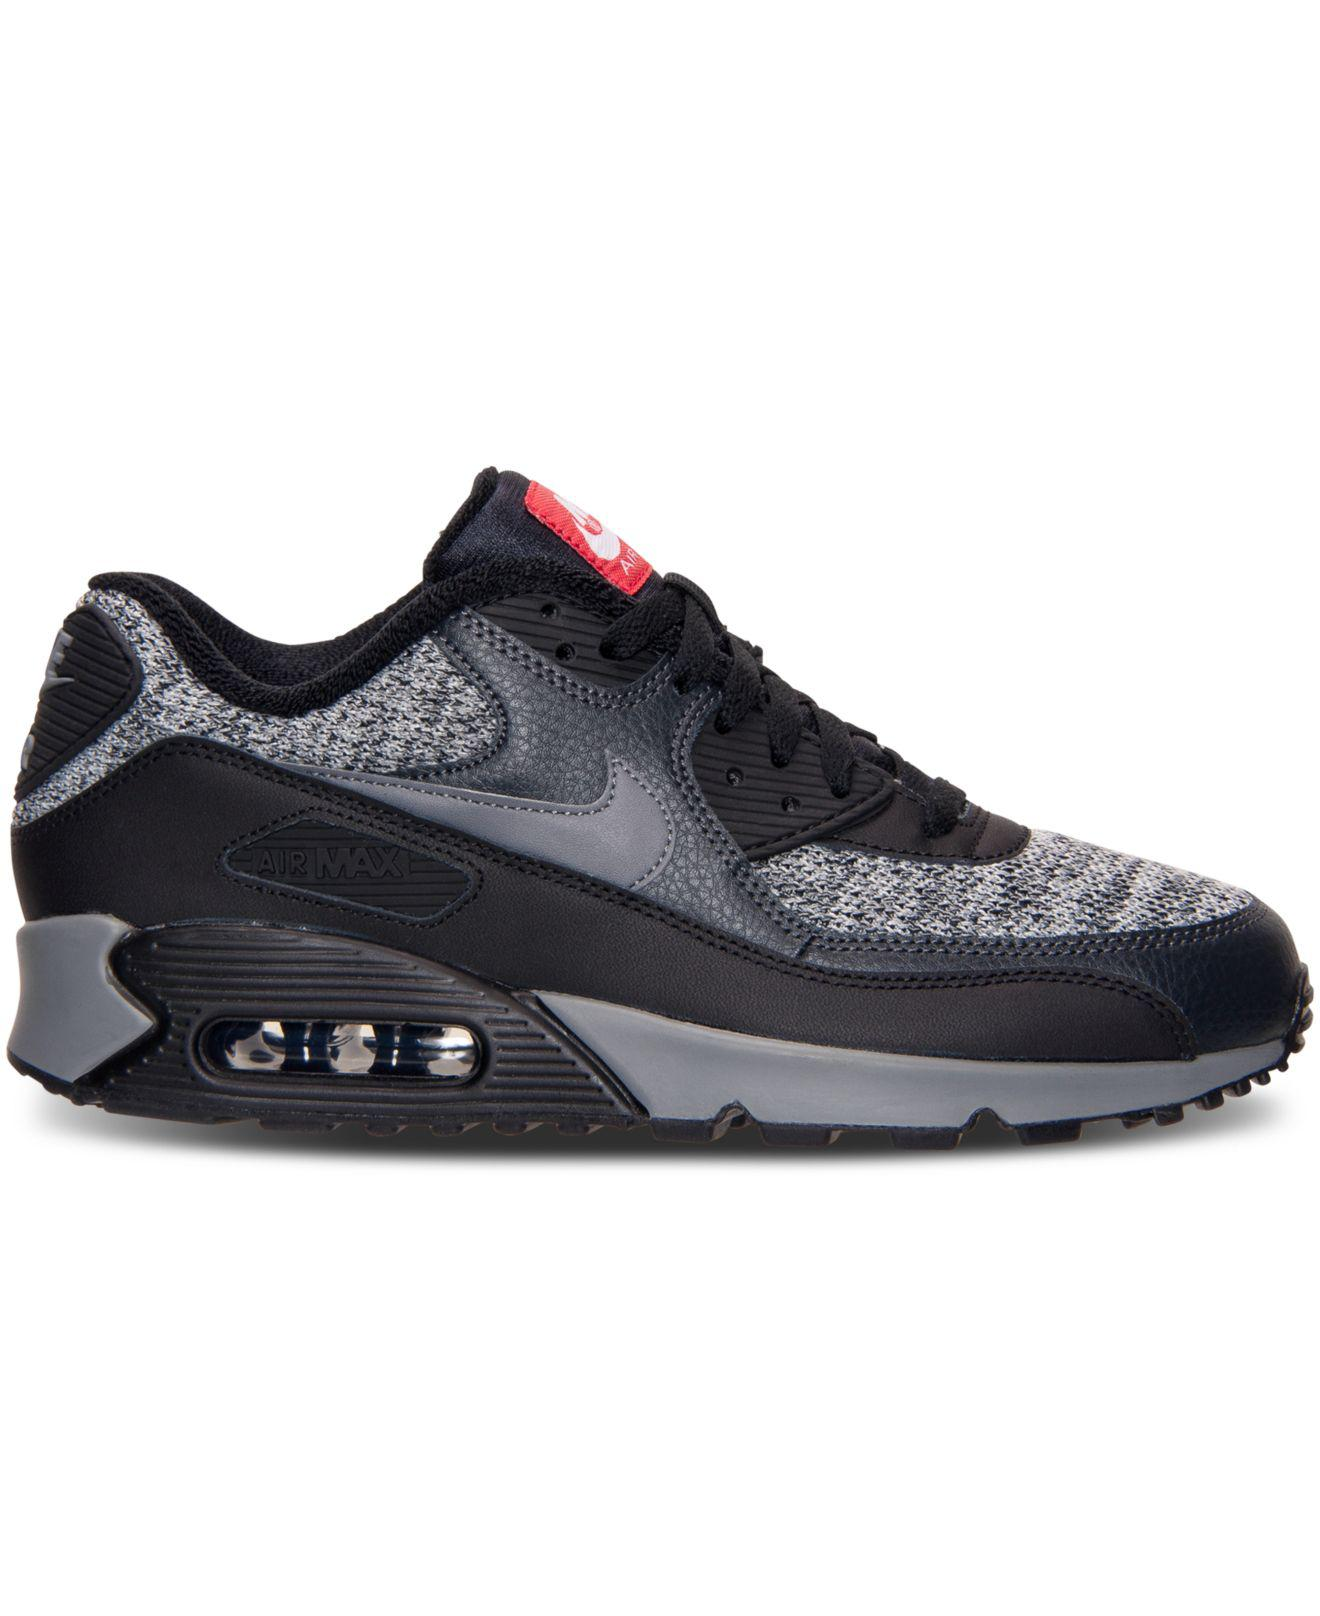 Lyst - Nike Men s Air Max 90 Essential Running Sneakers From Finish Line in  Black for Men - Save 55.04587155963303% 6b7c4da5a